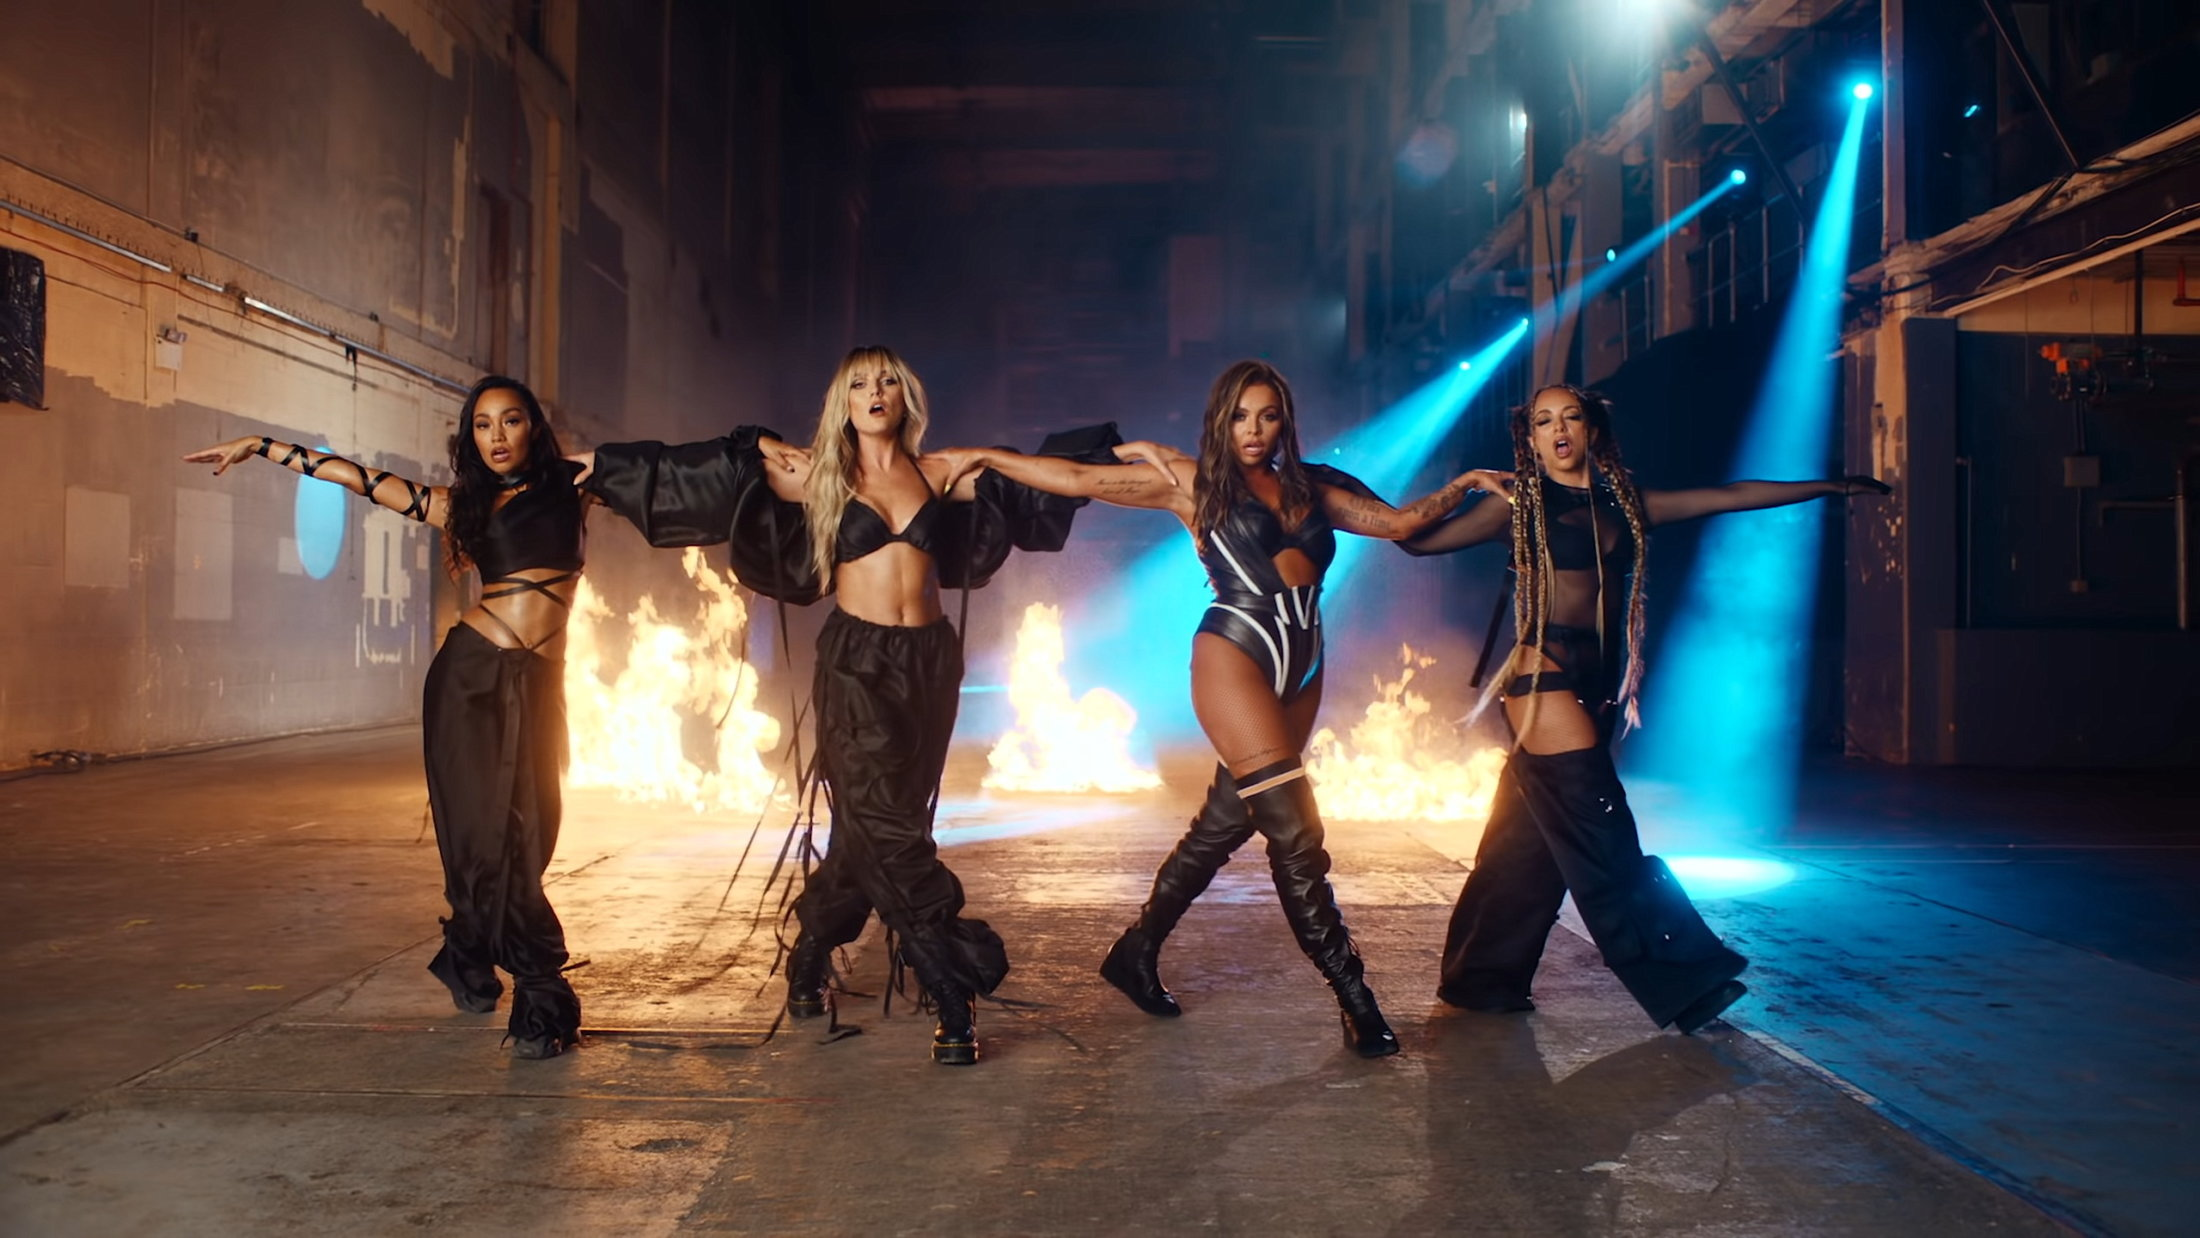 Little Mix - Sweet Melody (Official Video) 2-32 Screenshot